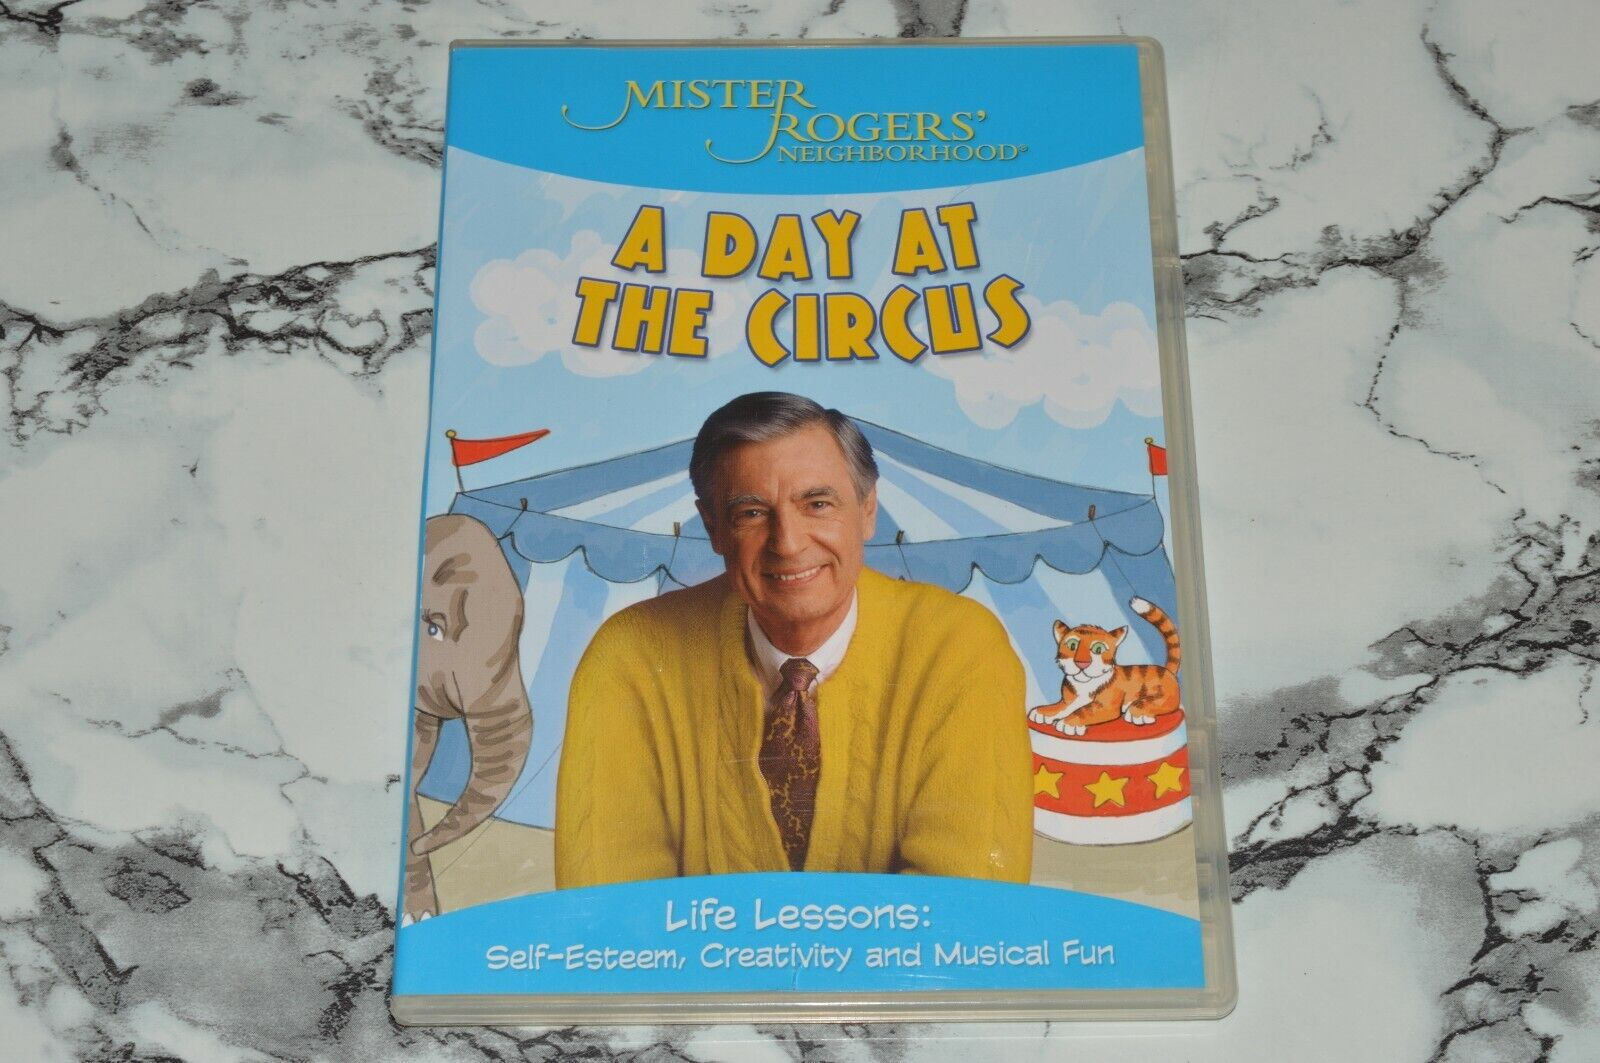 Mister Rogers Neighborhood - A Day At The Circus DVD, 2005  - $12.68